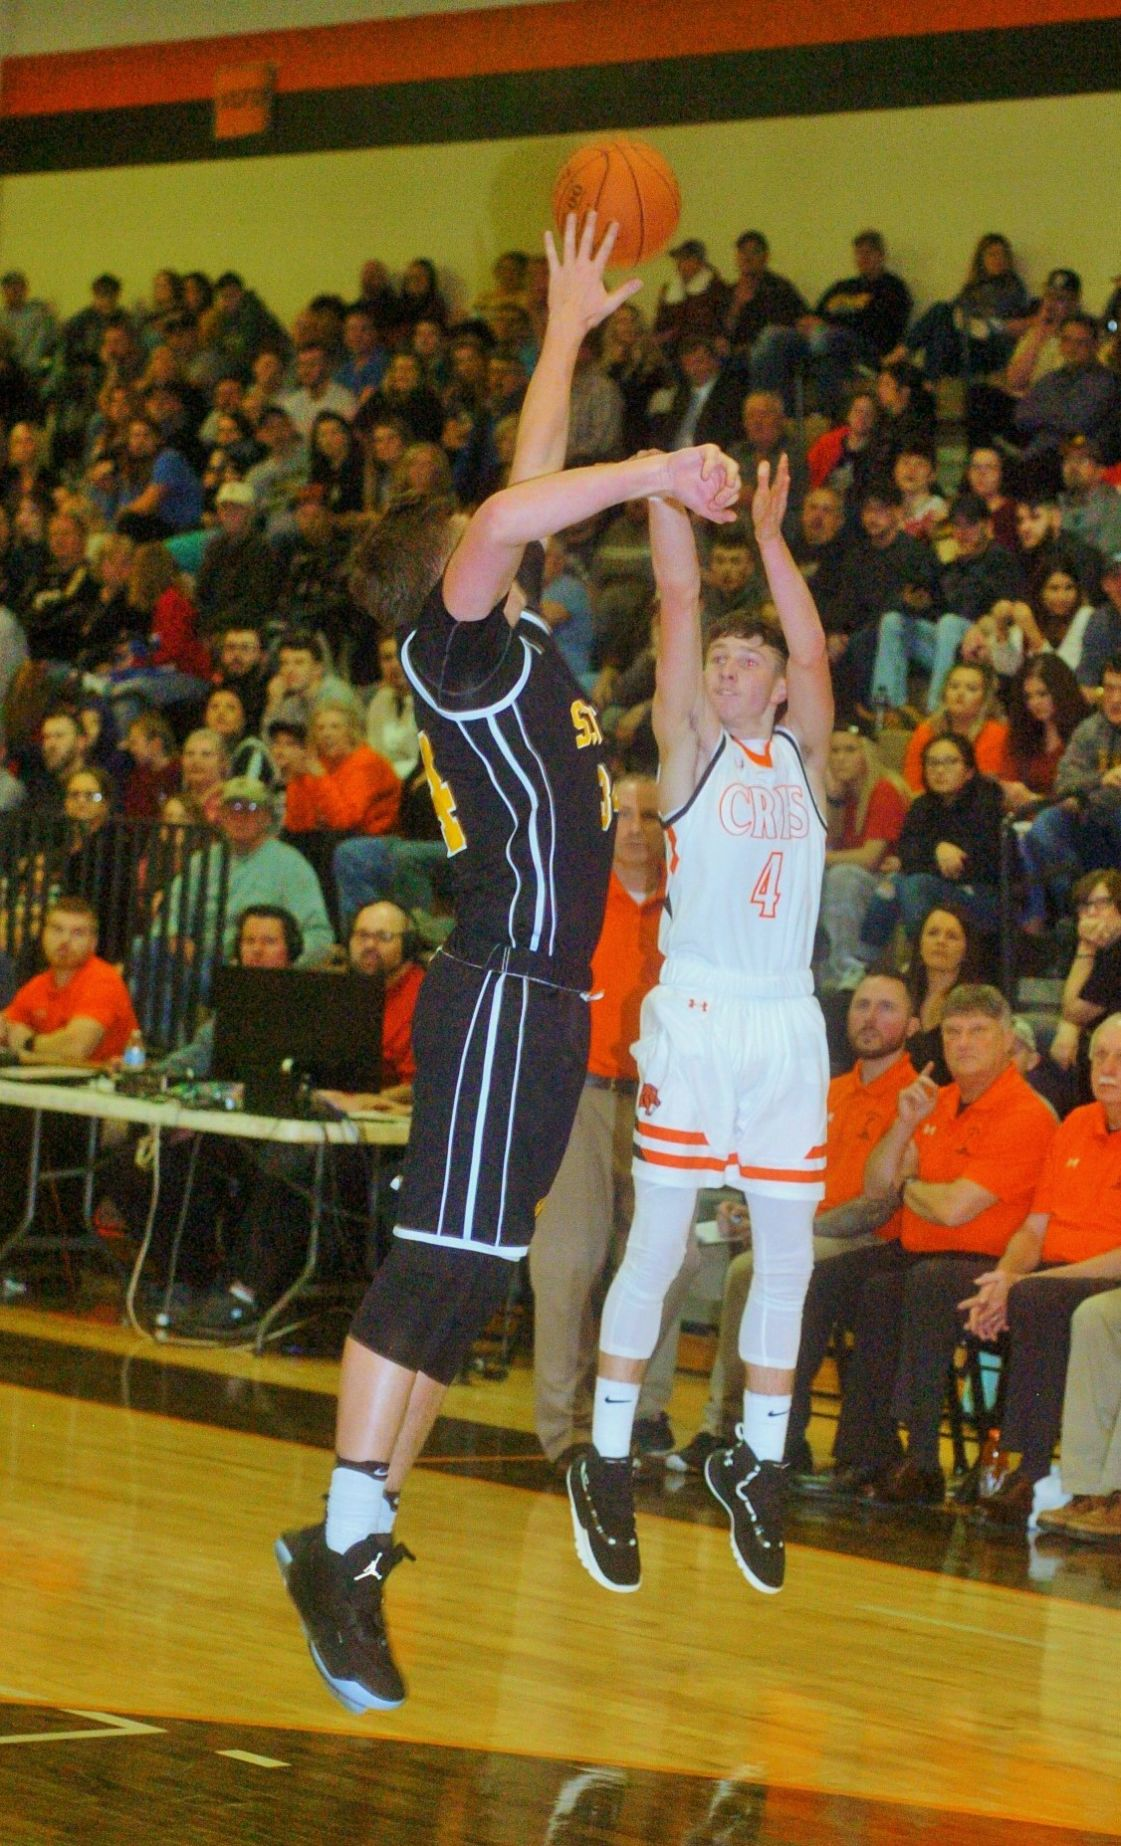 1221_ChapScottGame Hunter Cook shoots